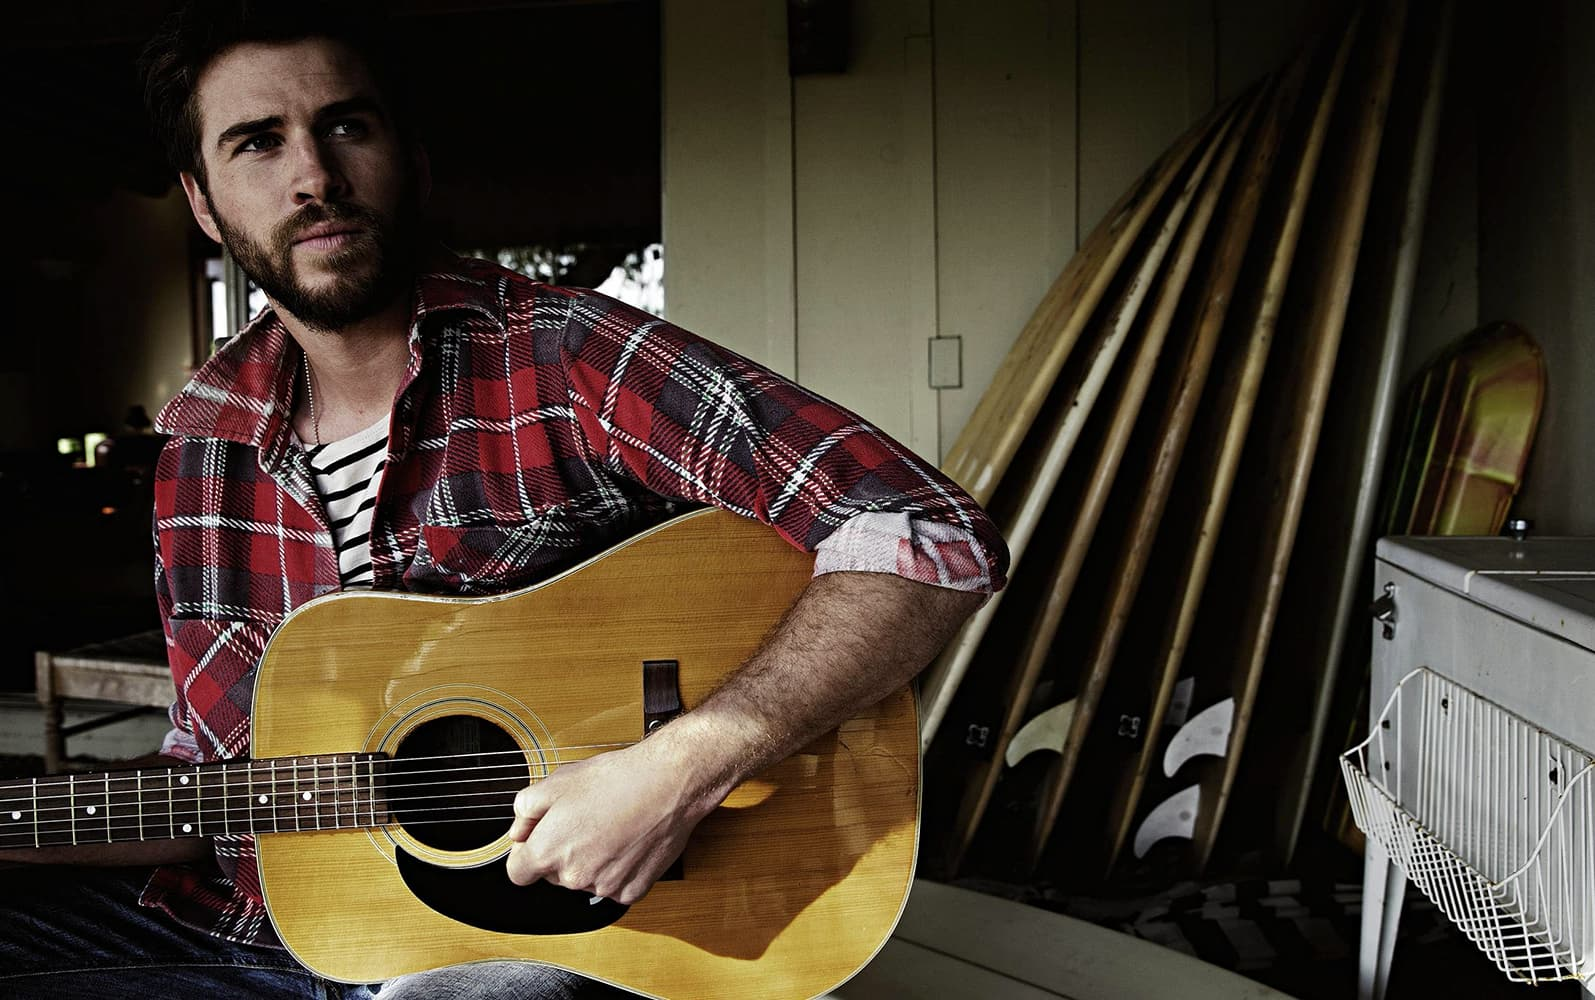 Liam Hemsworth with guitar theme for windows 10